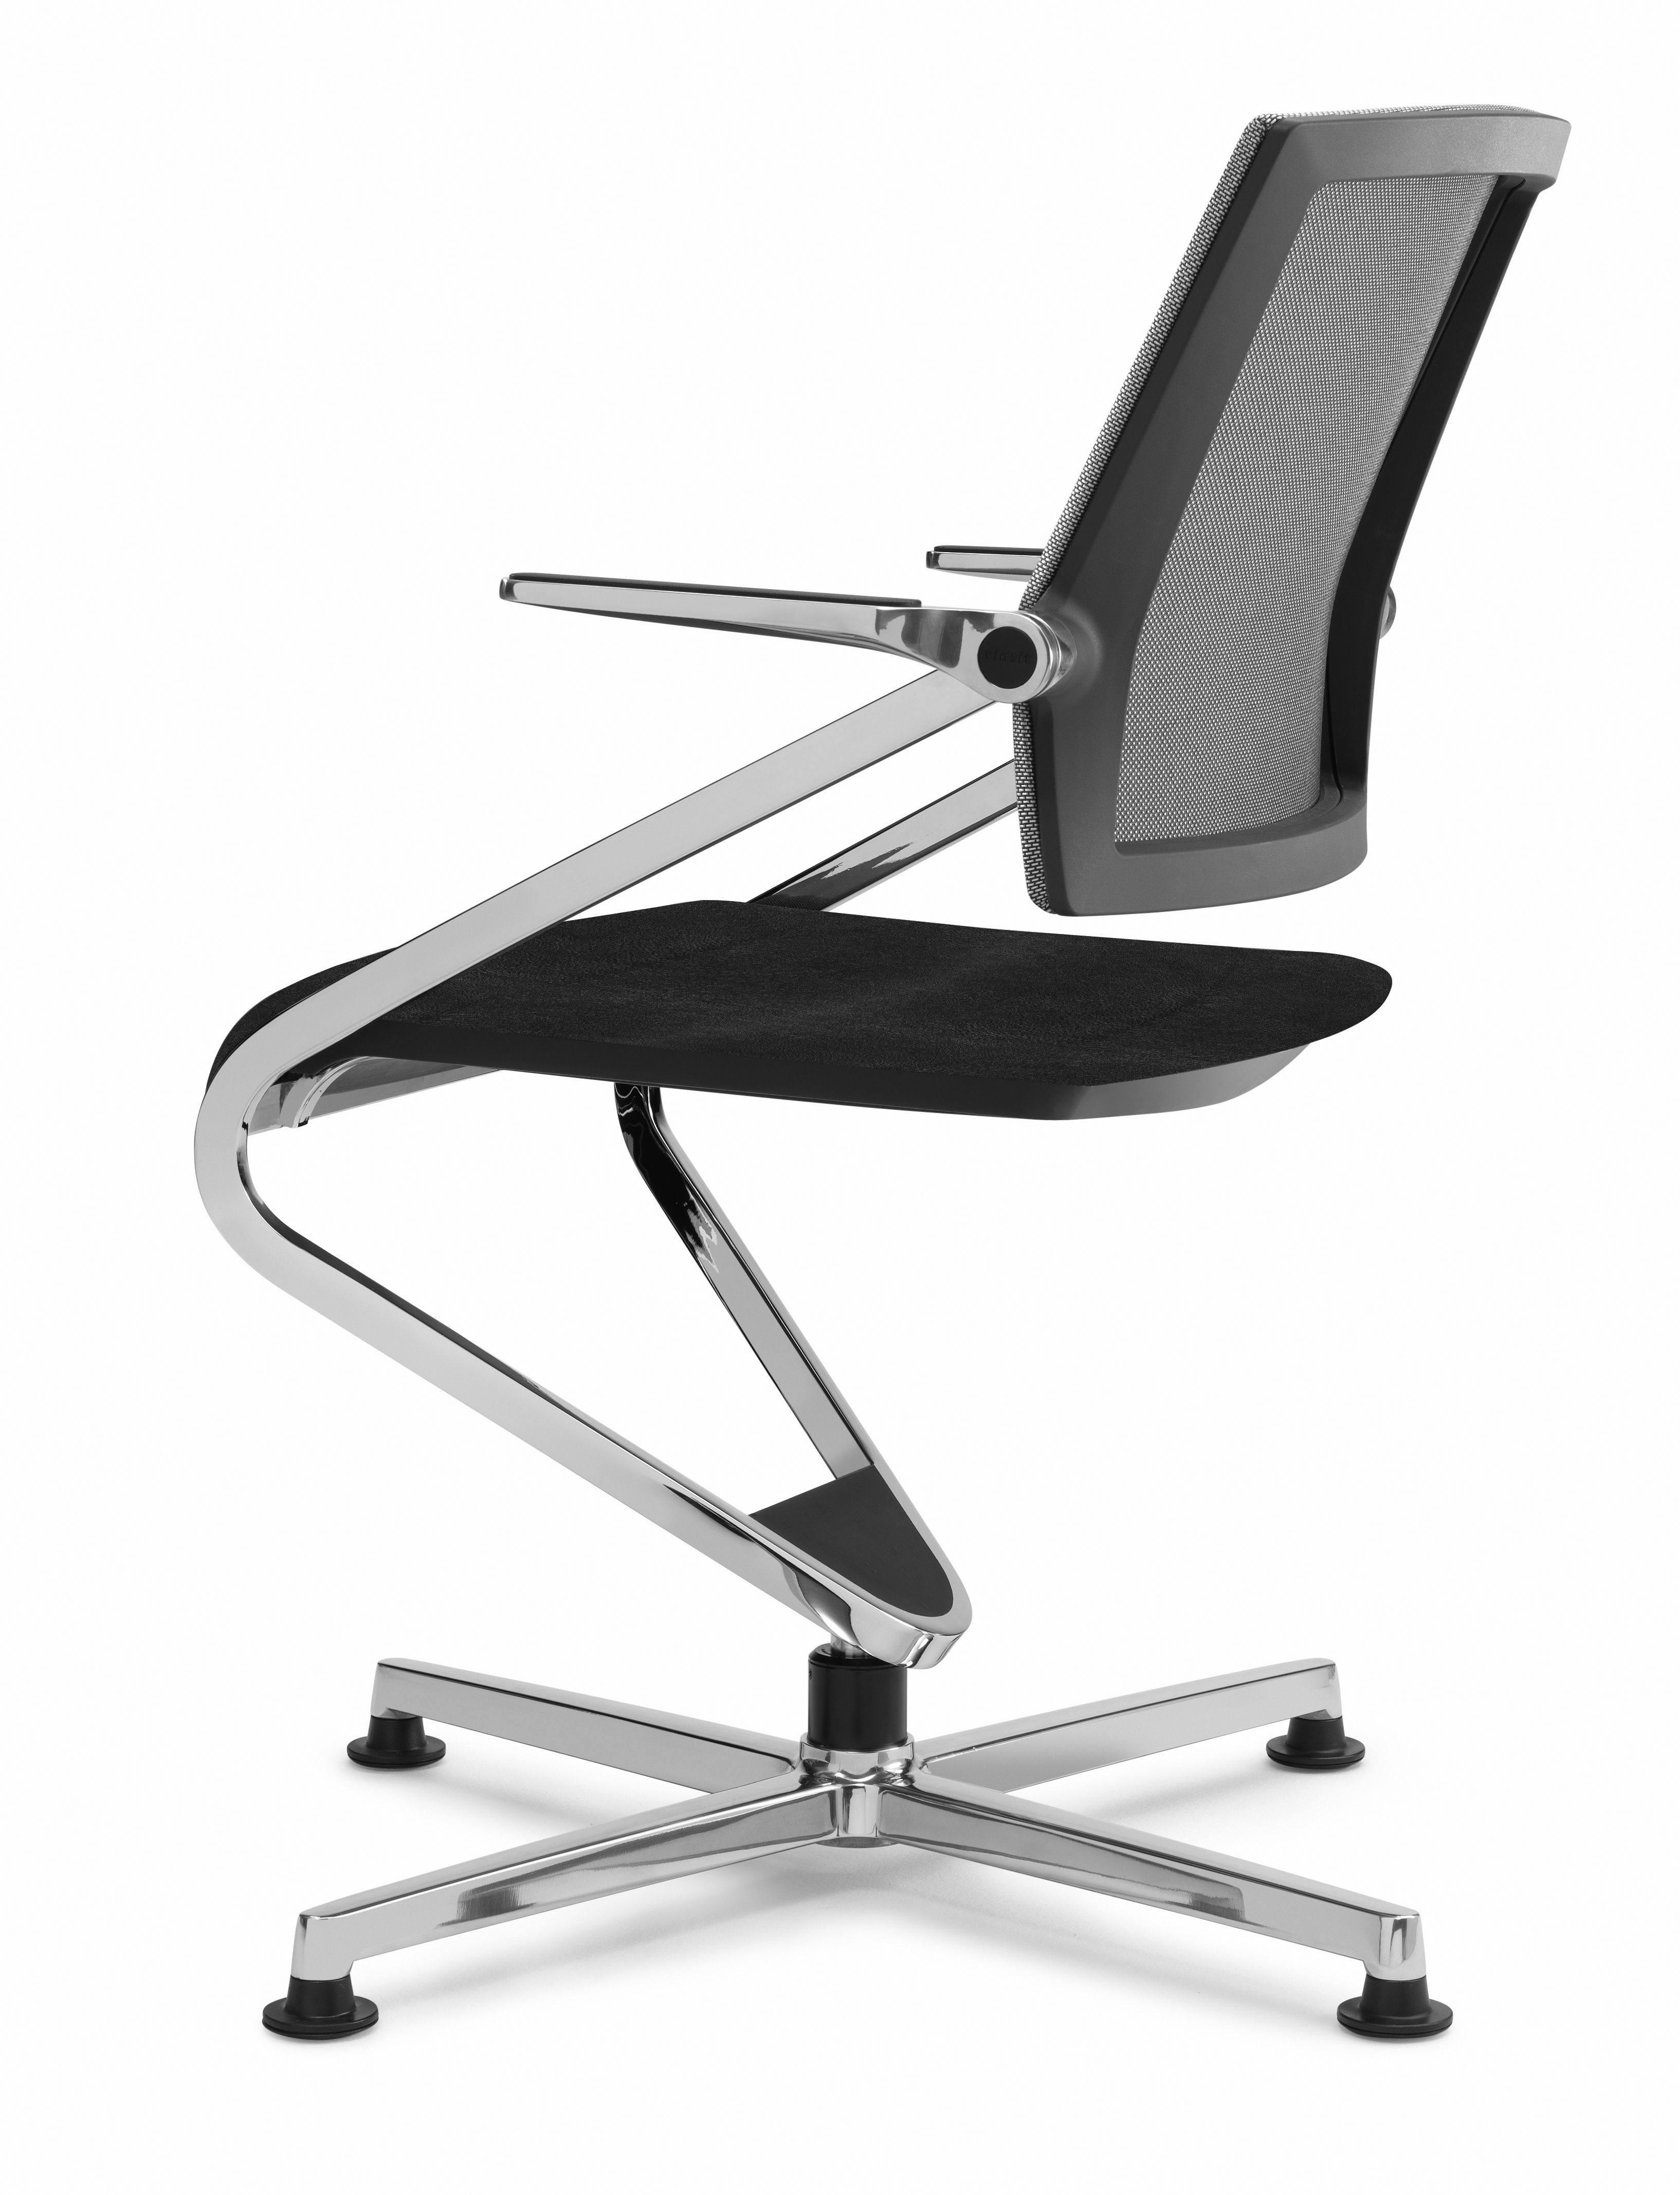 Sedere mesh backrest swivel conference chair with glides